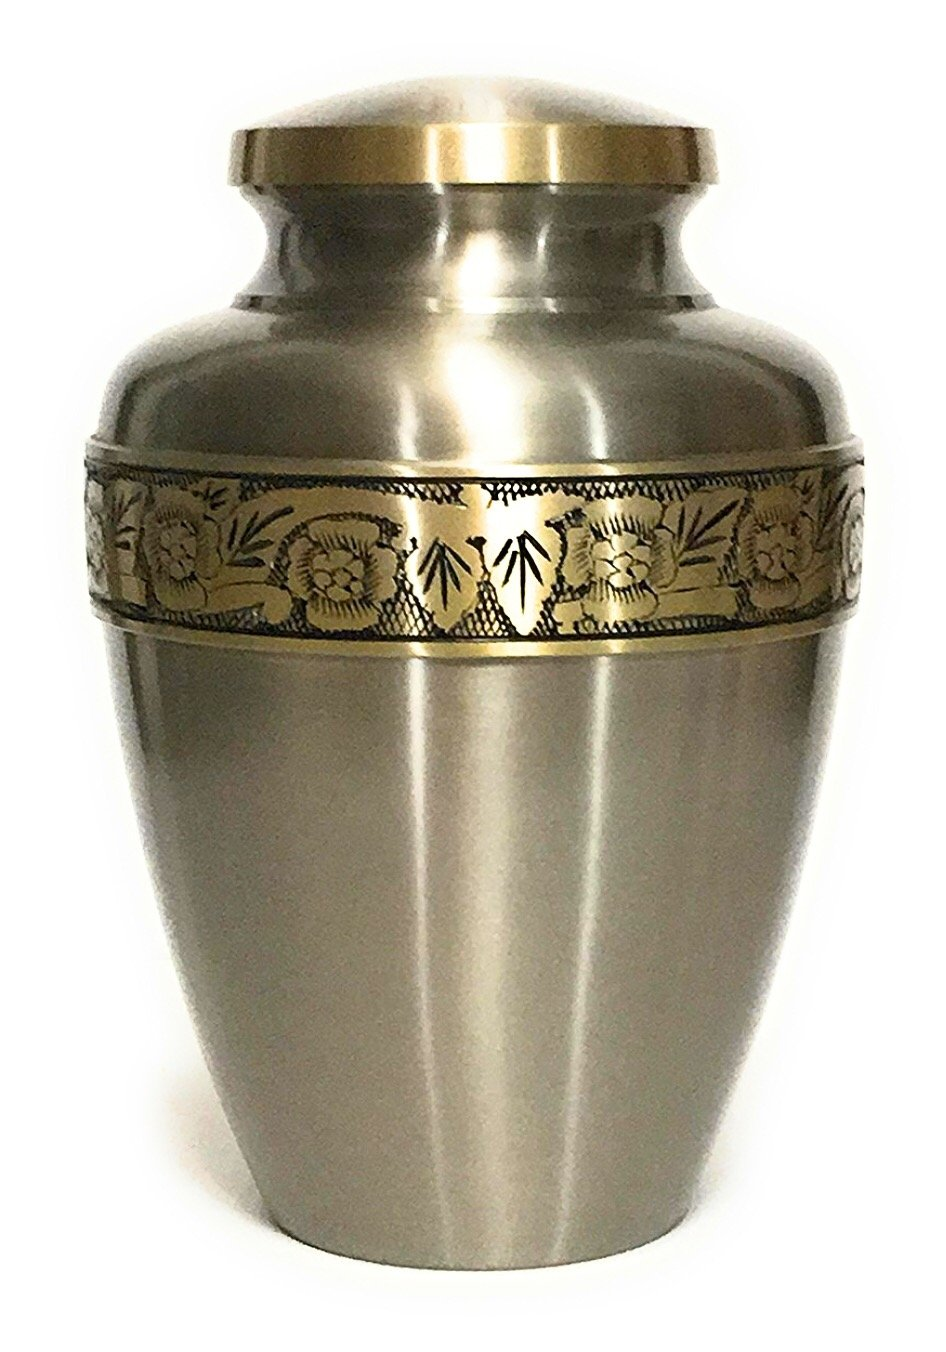 Indian Artefacts Handcrafted Silver Cremation Urn with Gold Floral Border for Adult Human Ashes,10 Inches High